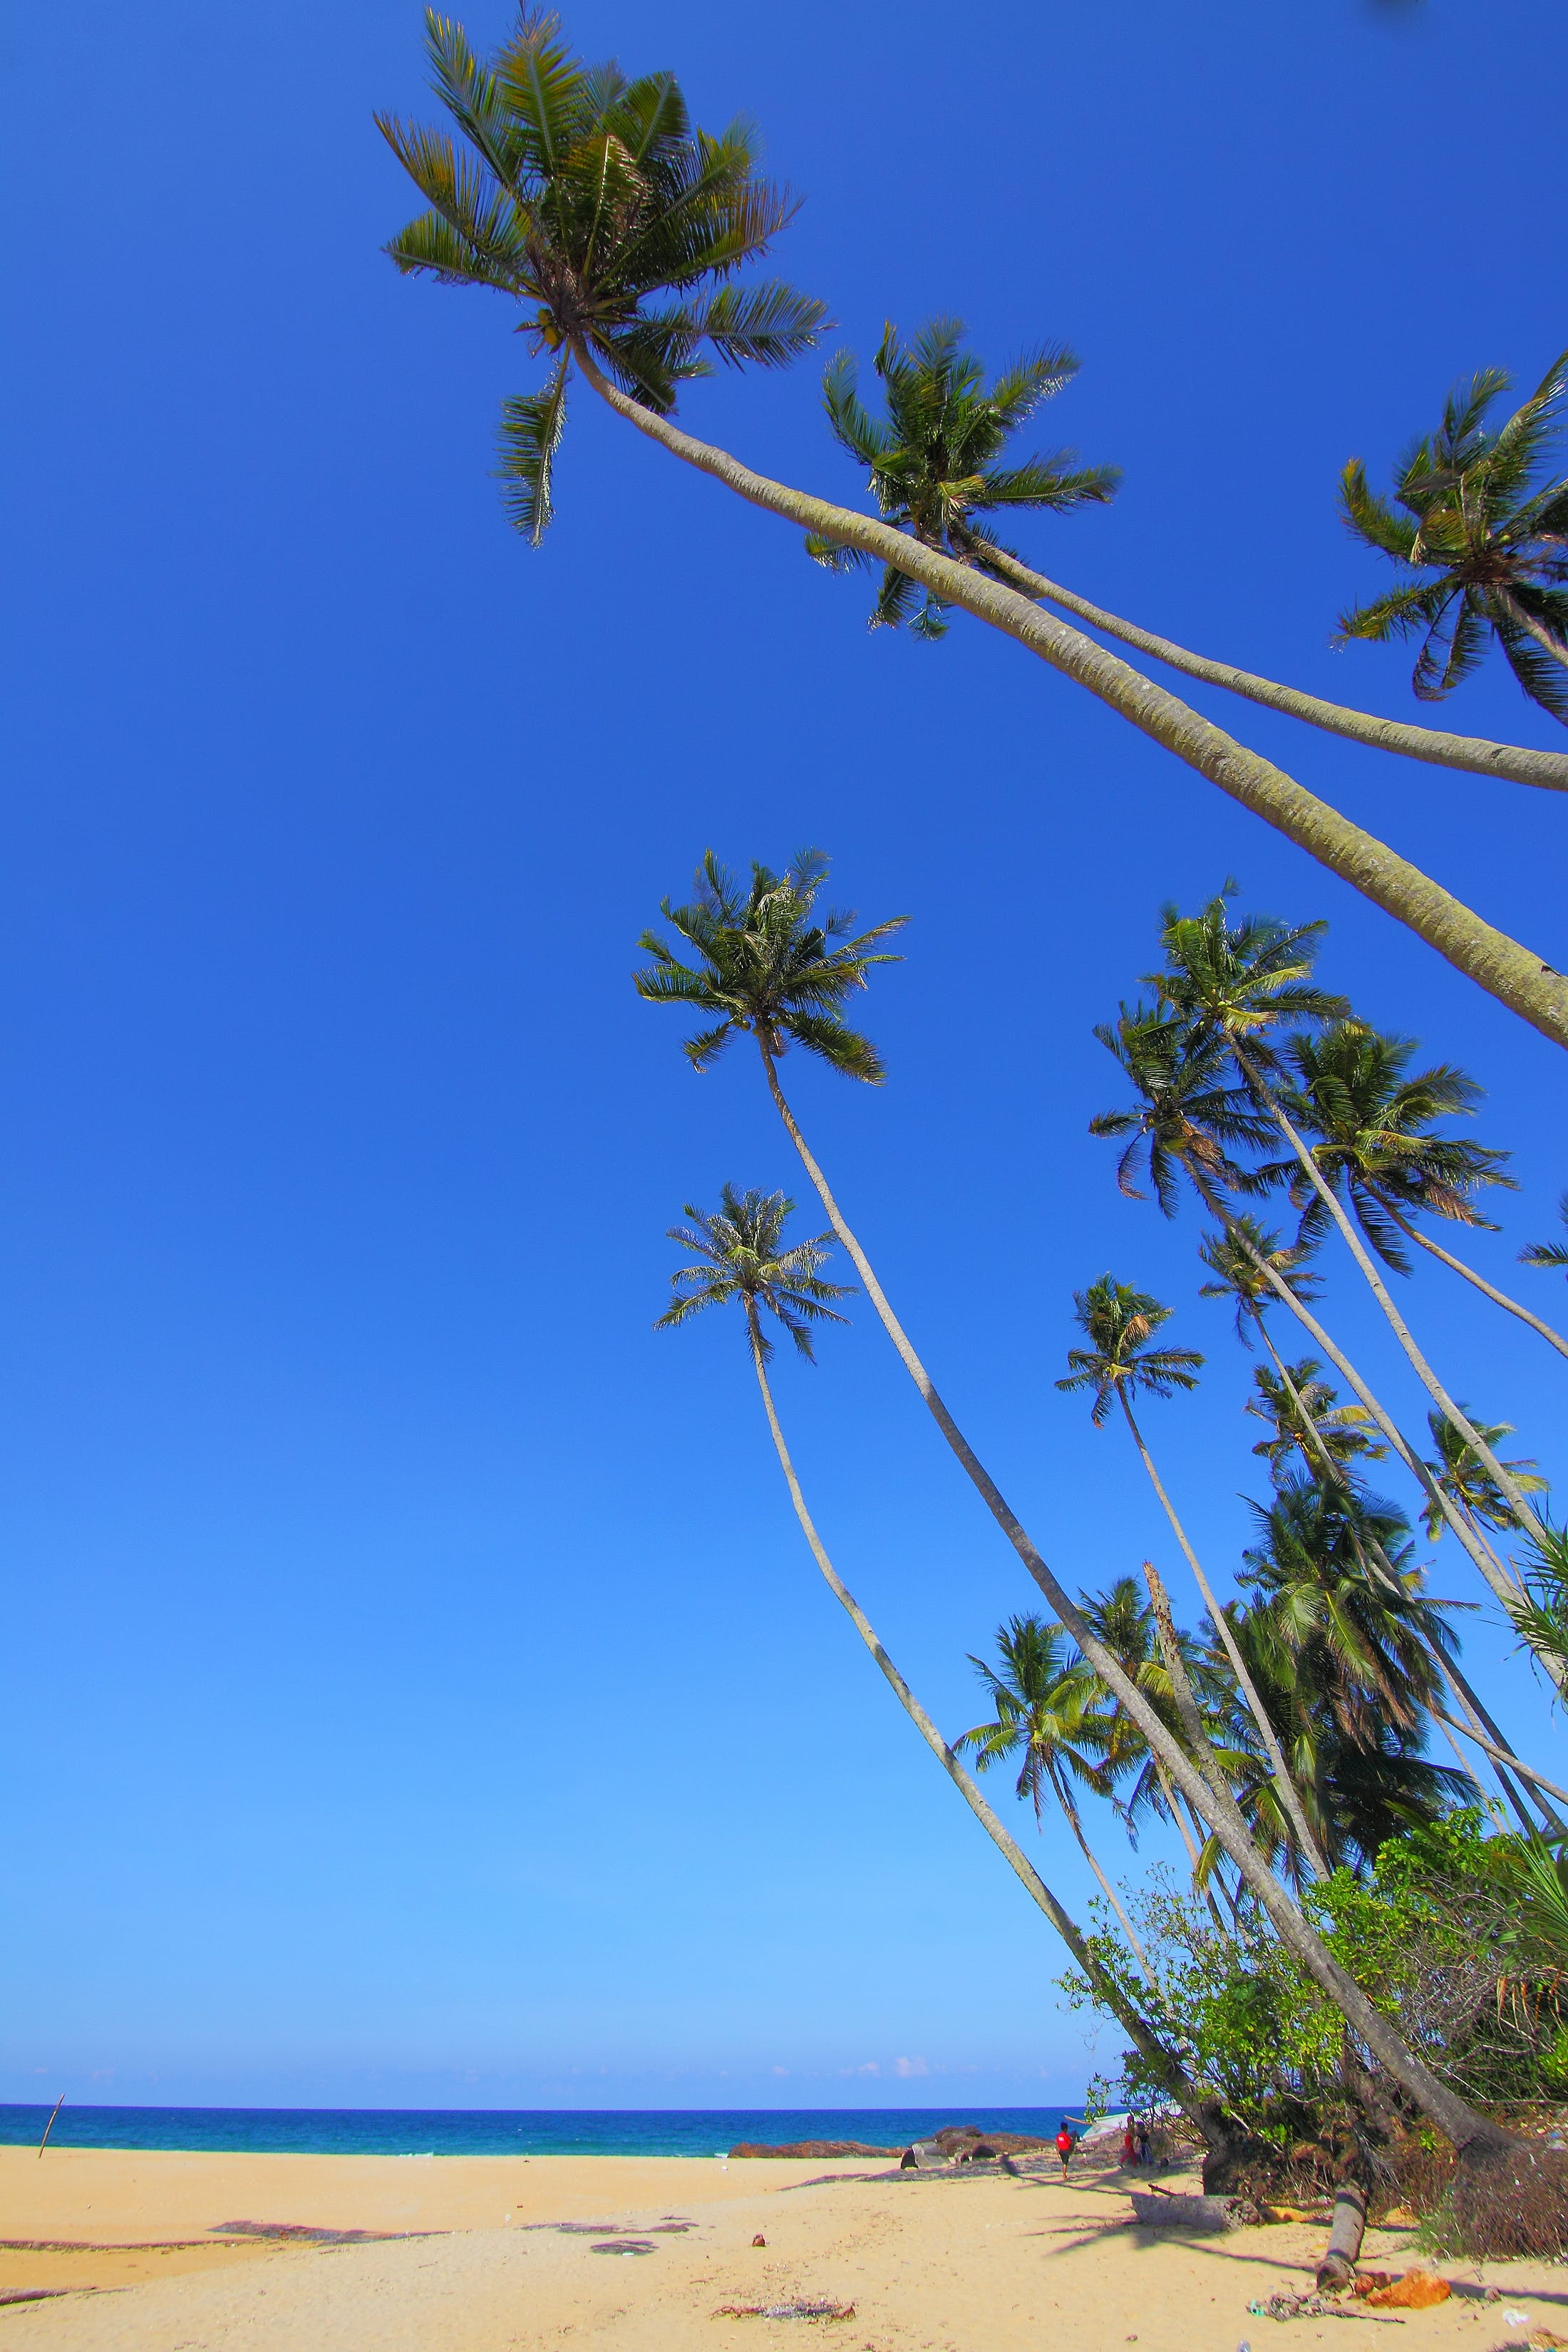 Coconut Trees on Seashore Under Blue Skies